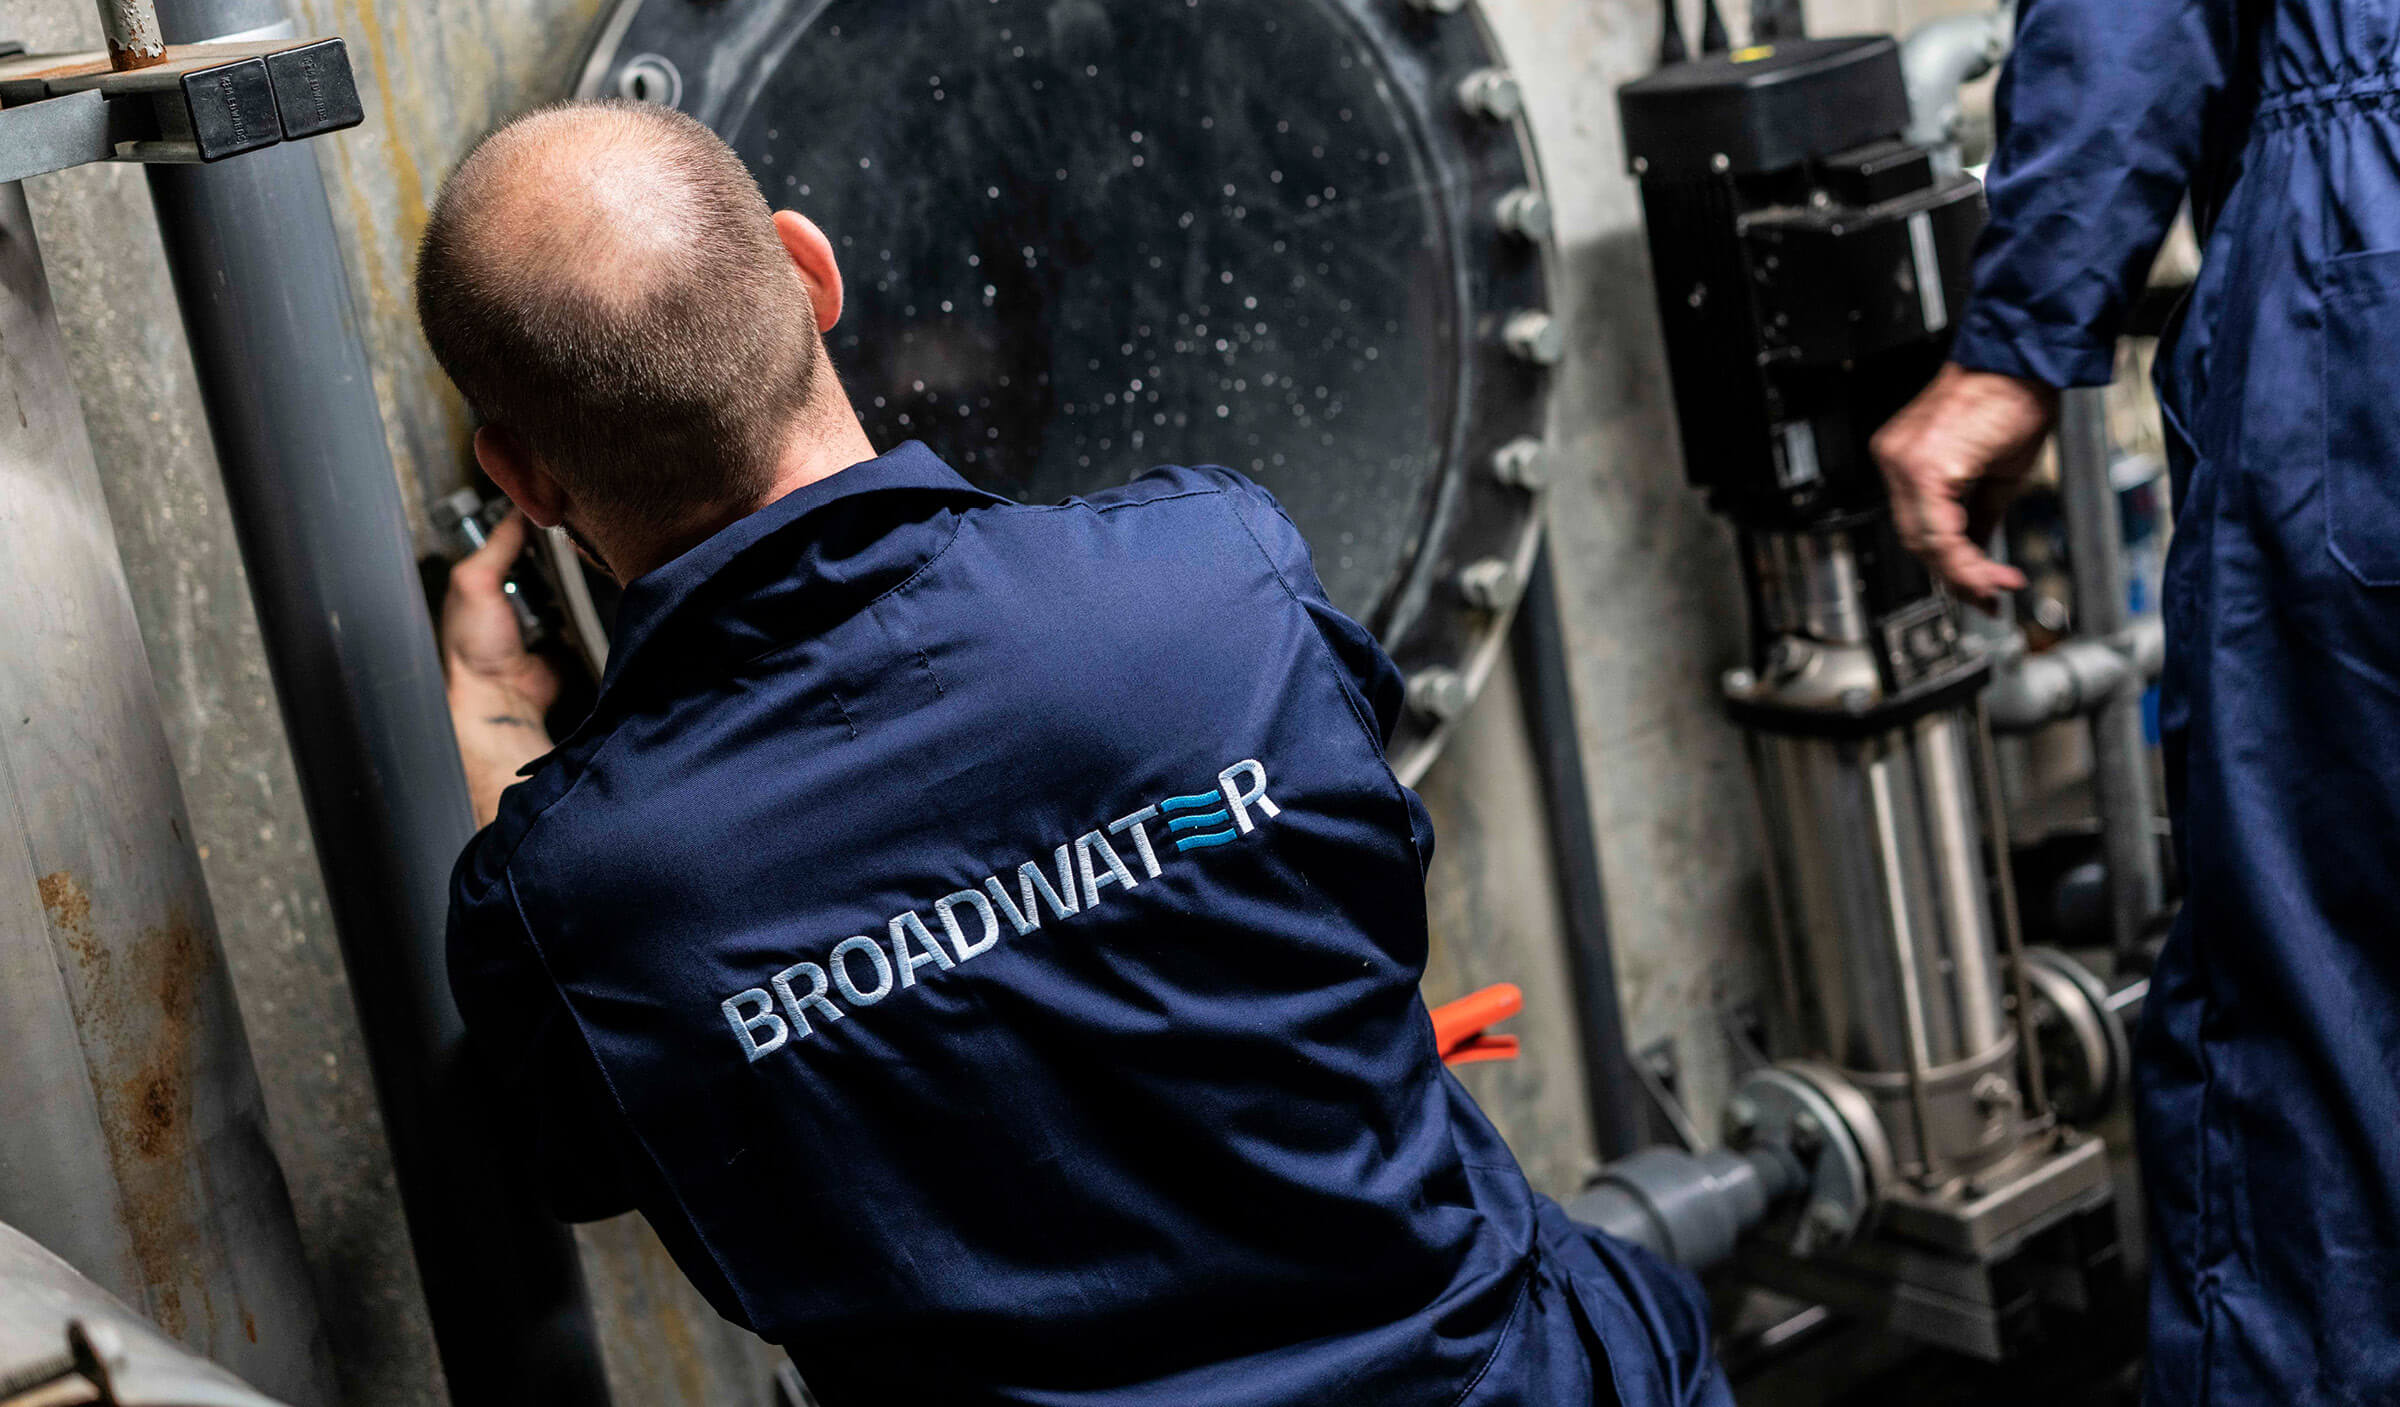 Broadwater engineers photography